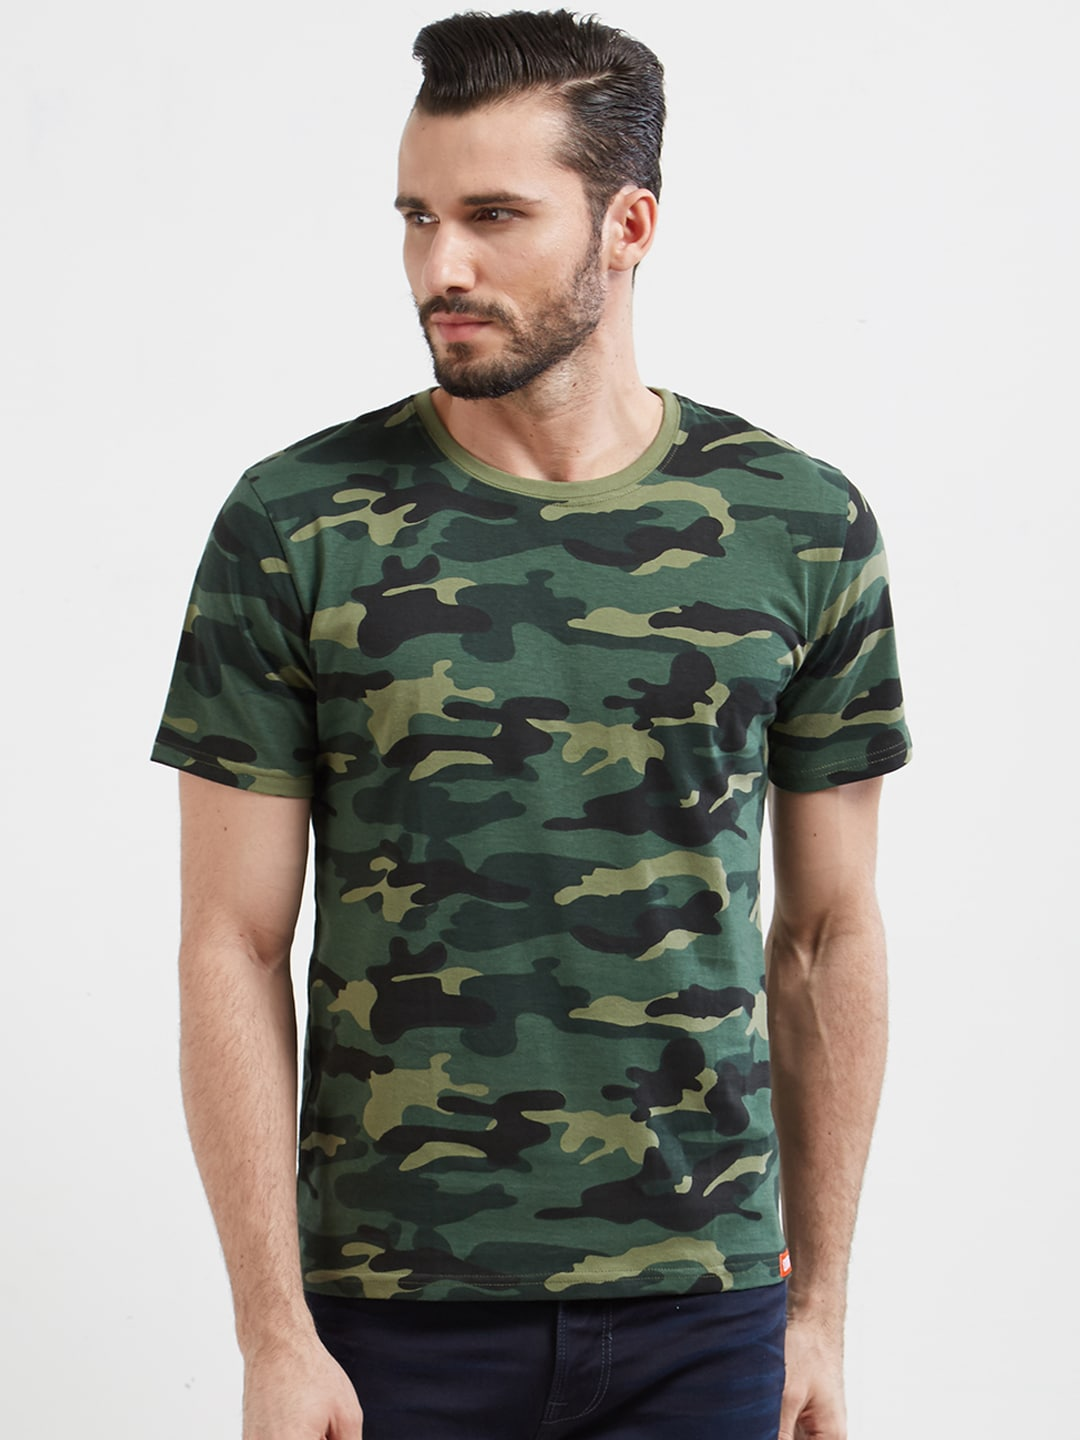 5962a950d9d1 Men Camouflage Tshirts - Buy Men Camouflage Tshirts online in India